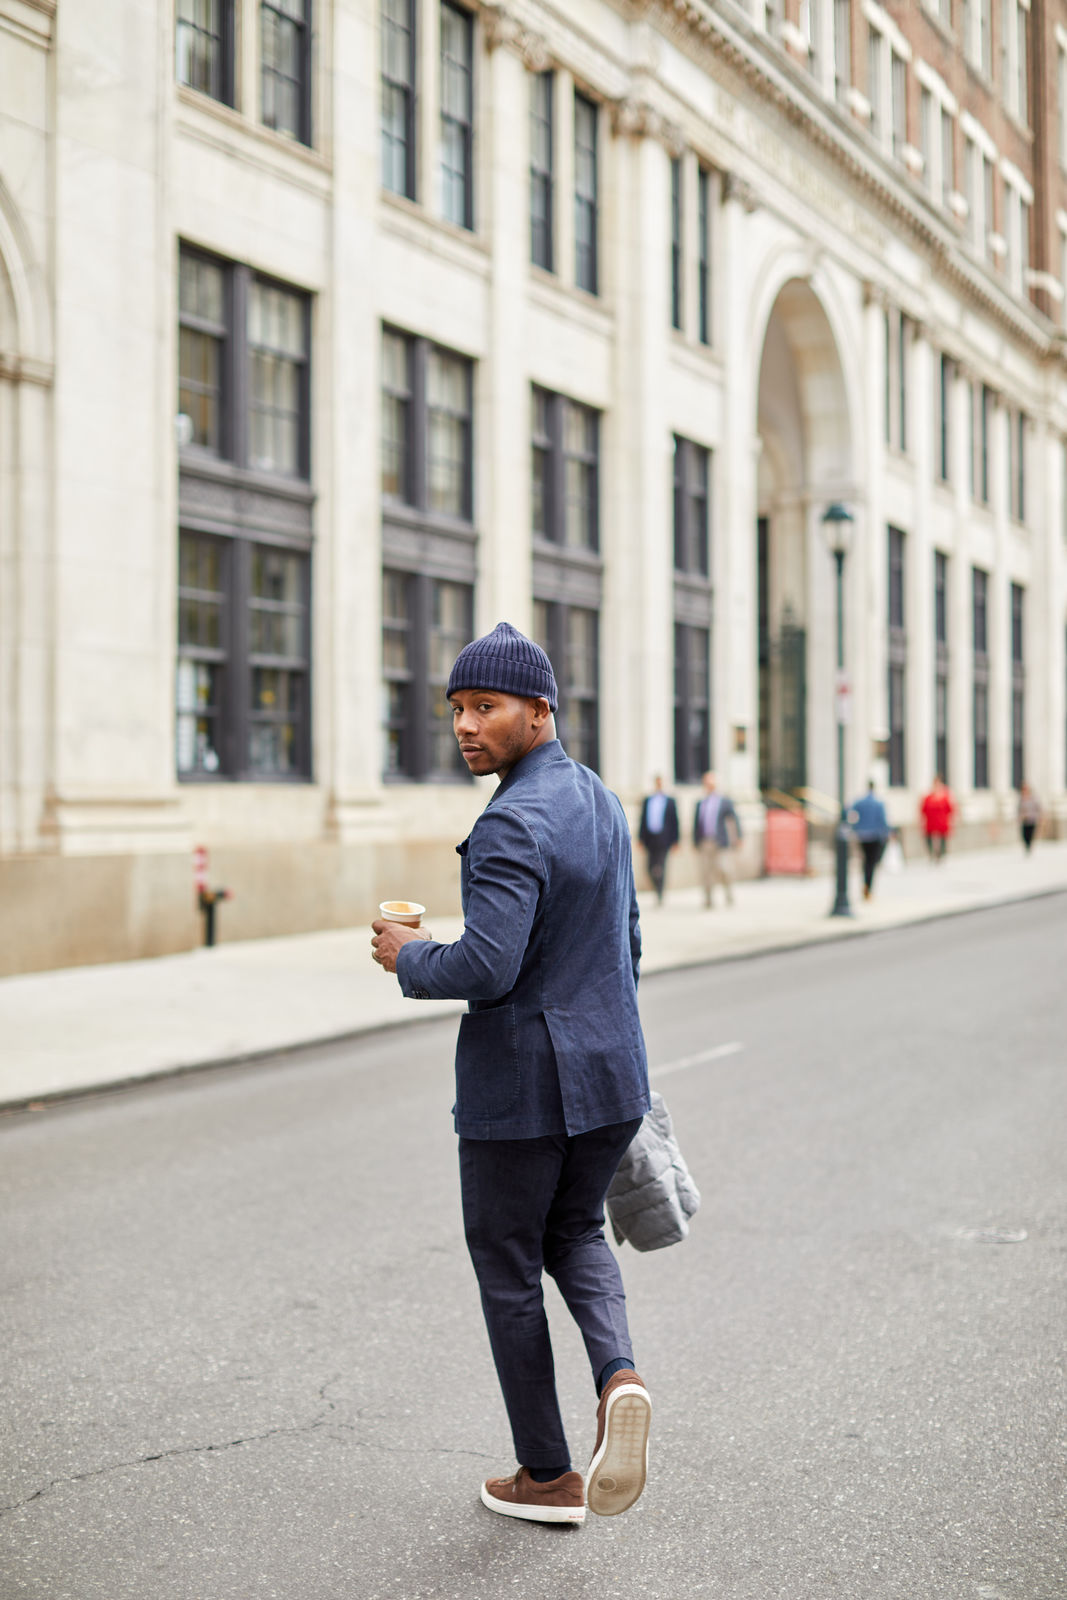 Moda Matters Denim Suit on Men's Style Pro